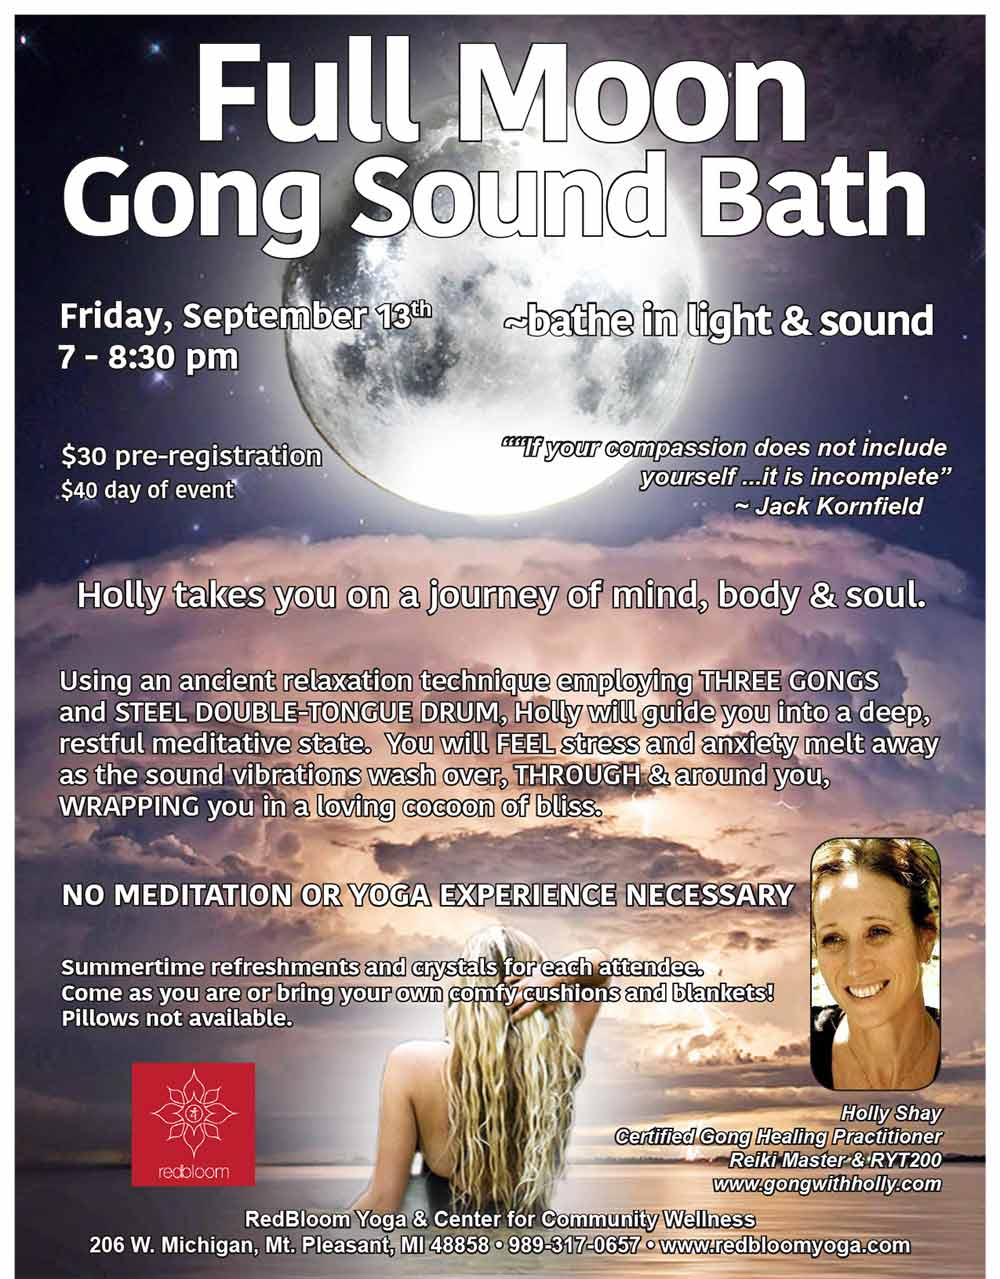 Full Moon Gong Sound Bath, Sept 13, RedBloom Yoga, Mt. Pleasant Holly Shay Certified Gong Healing Practitioner Reiki Master & RYT200